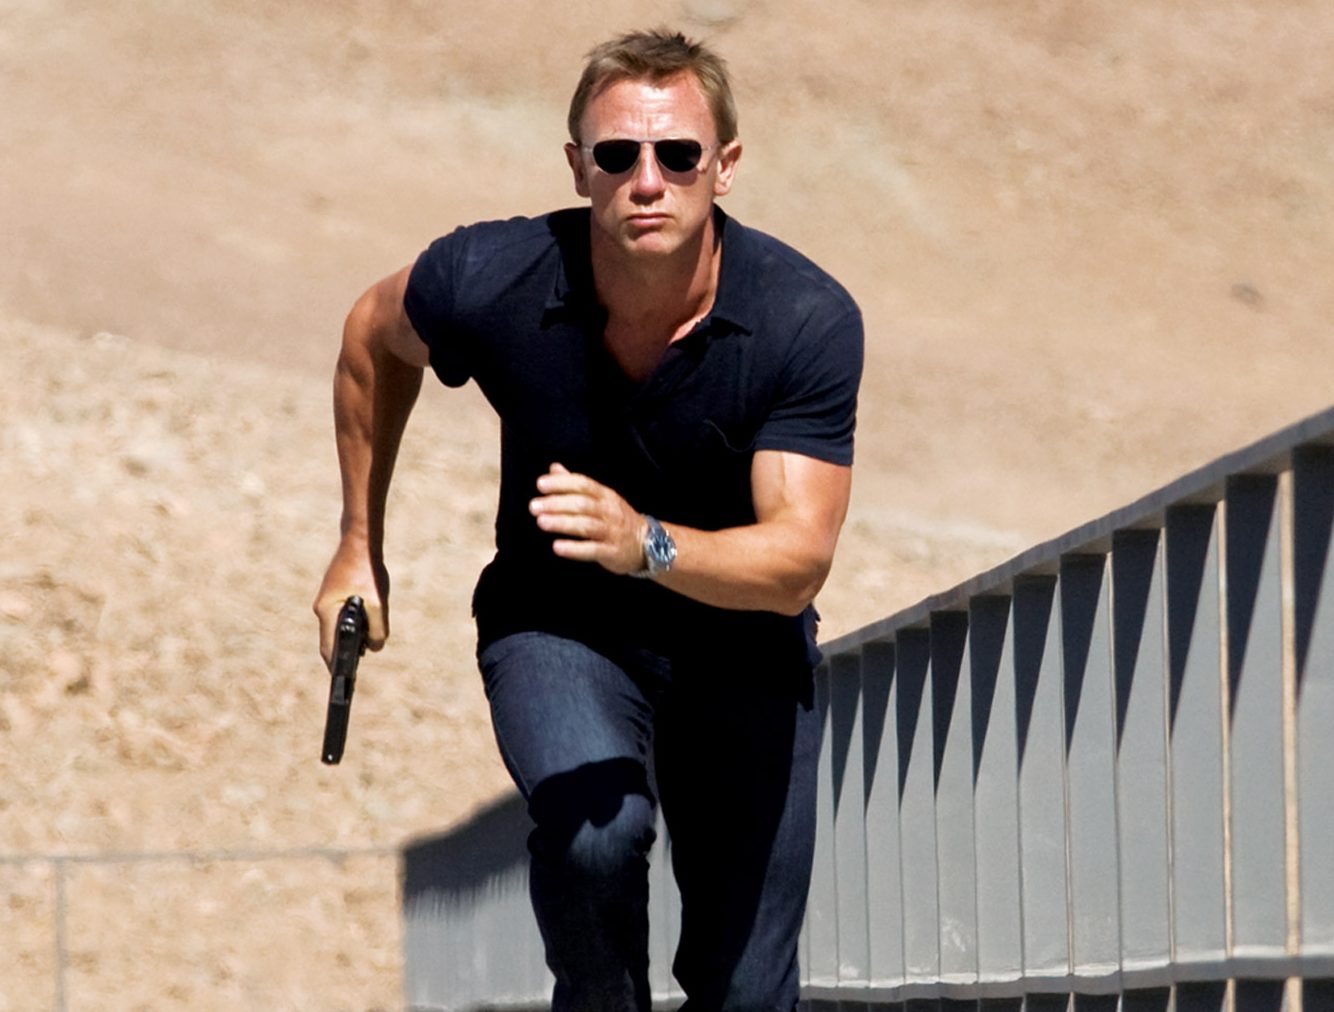 showtime svod 135382 Full Image GalleryBackground en US 1554204424113. RI e1615382133147 30 Things You Probably Didn't Know About The James Bond Films